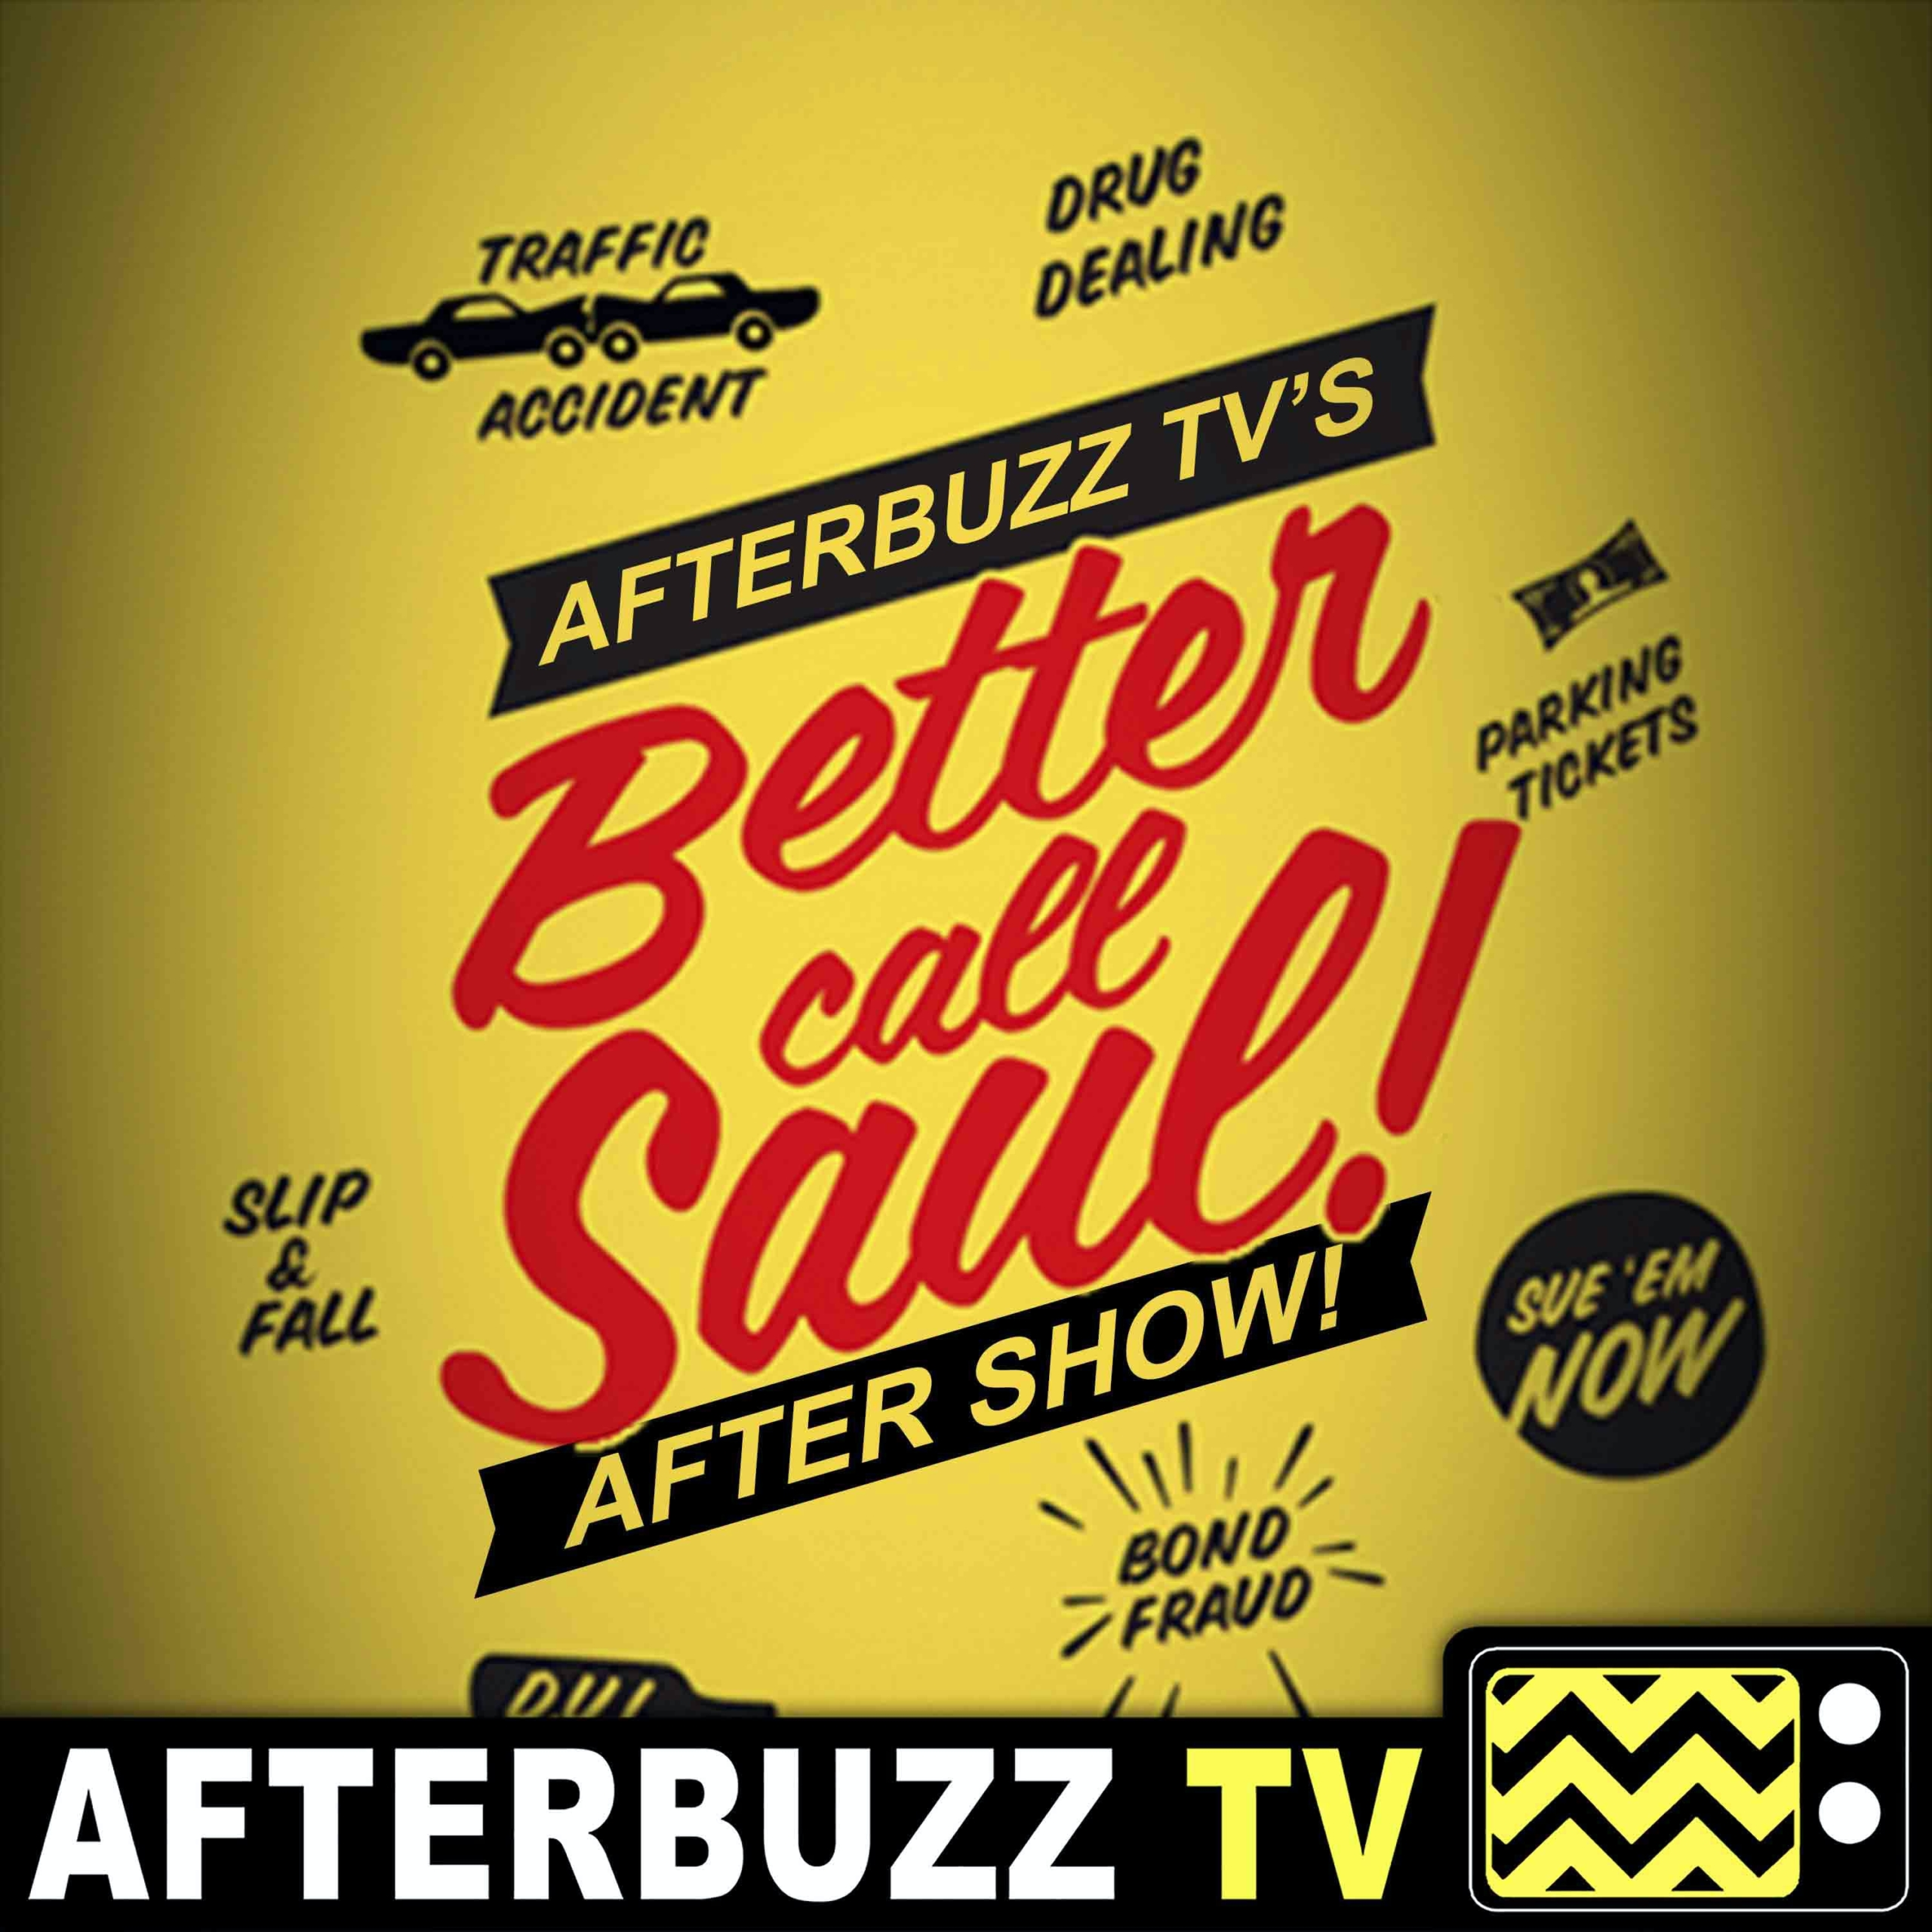 Lalo Unleashed! – S5 E10 'Better Call Saul' After Show with Patrick Fabian